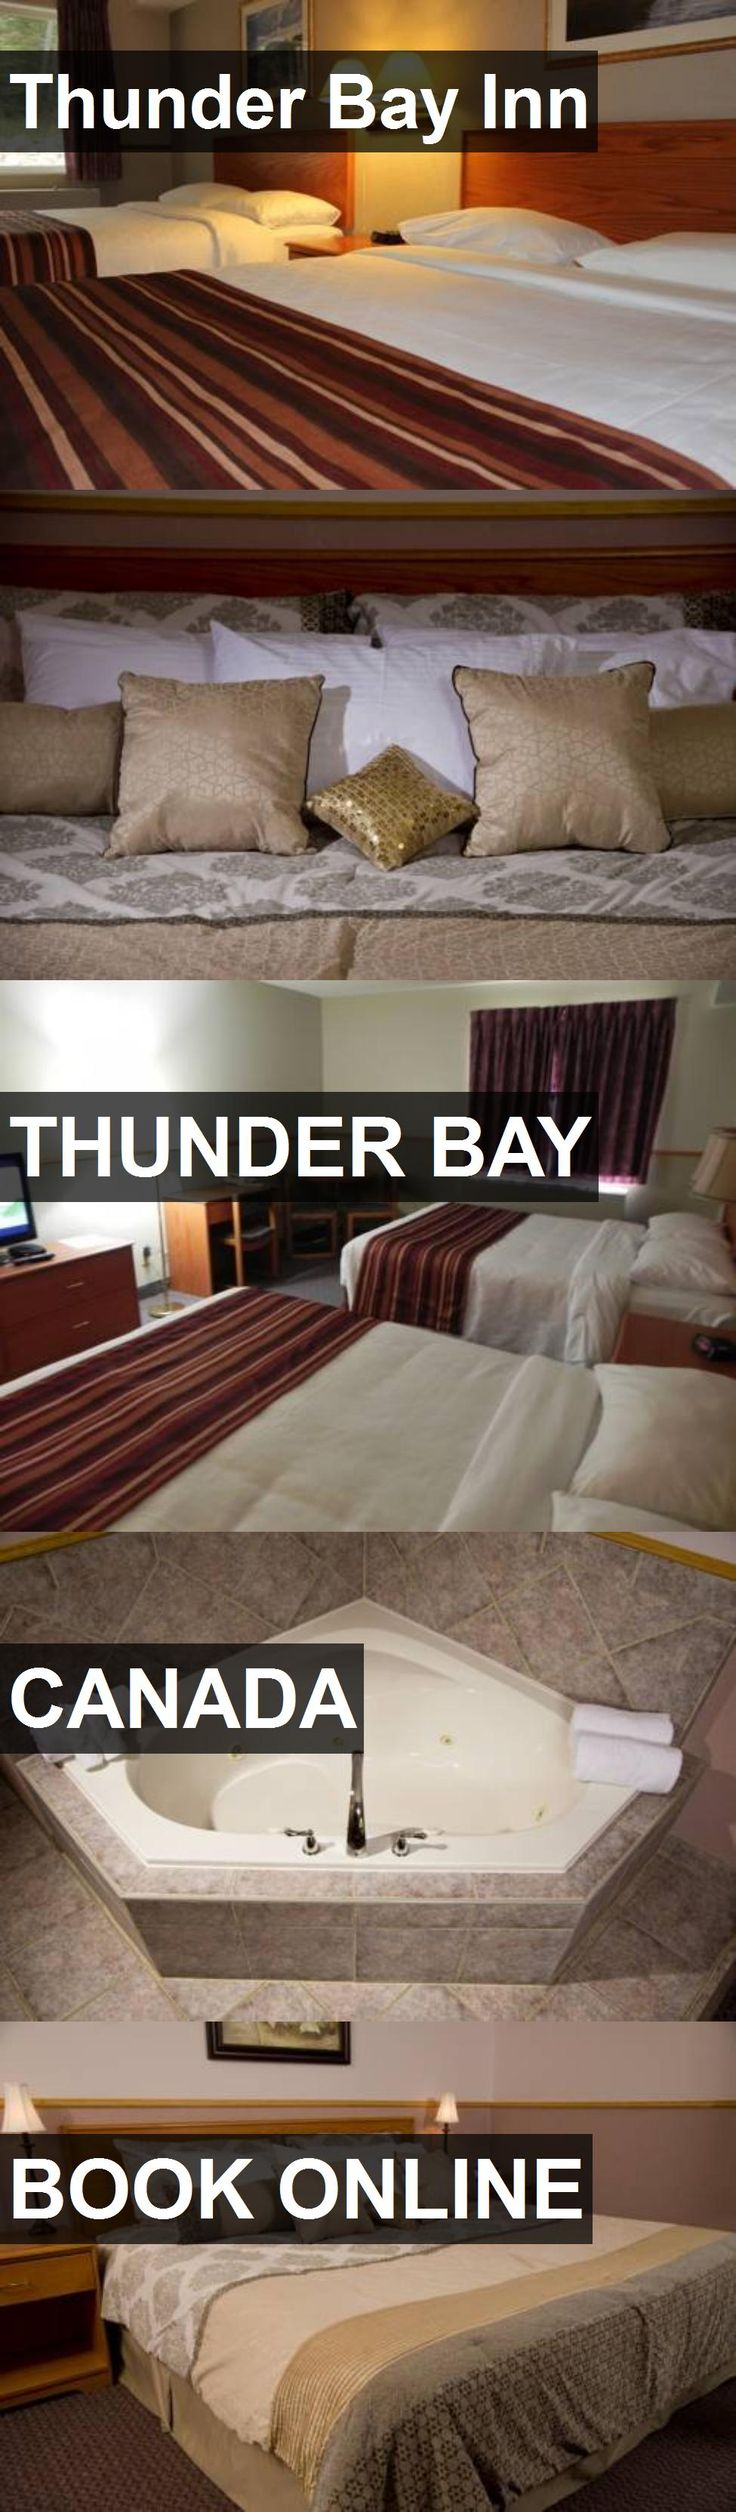 Hotel Thunder Bay Inn in Thunder Bay, Canada. For more information, photos, reviews and best prices please follow the link. #Canada #ThunderBay #travel #vacation #hotel